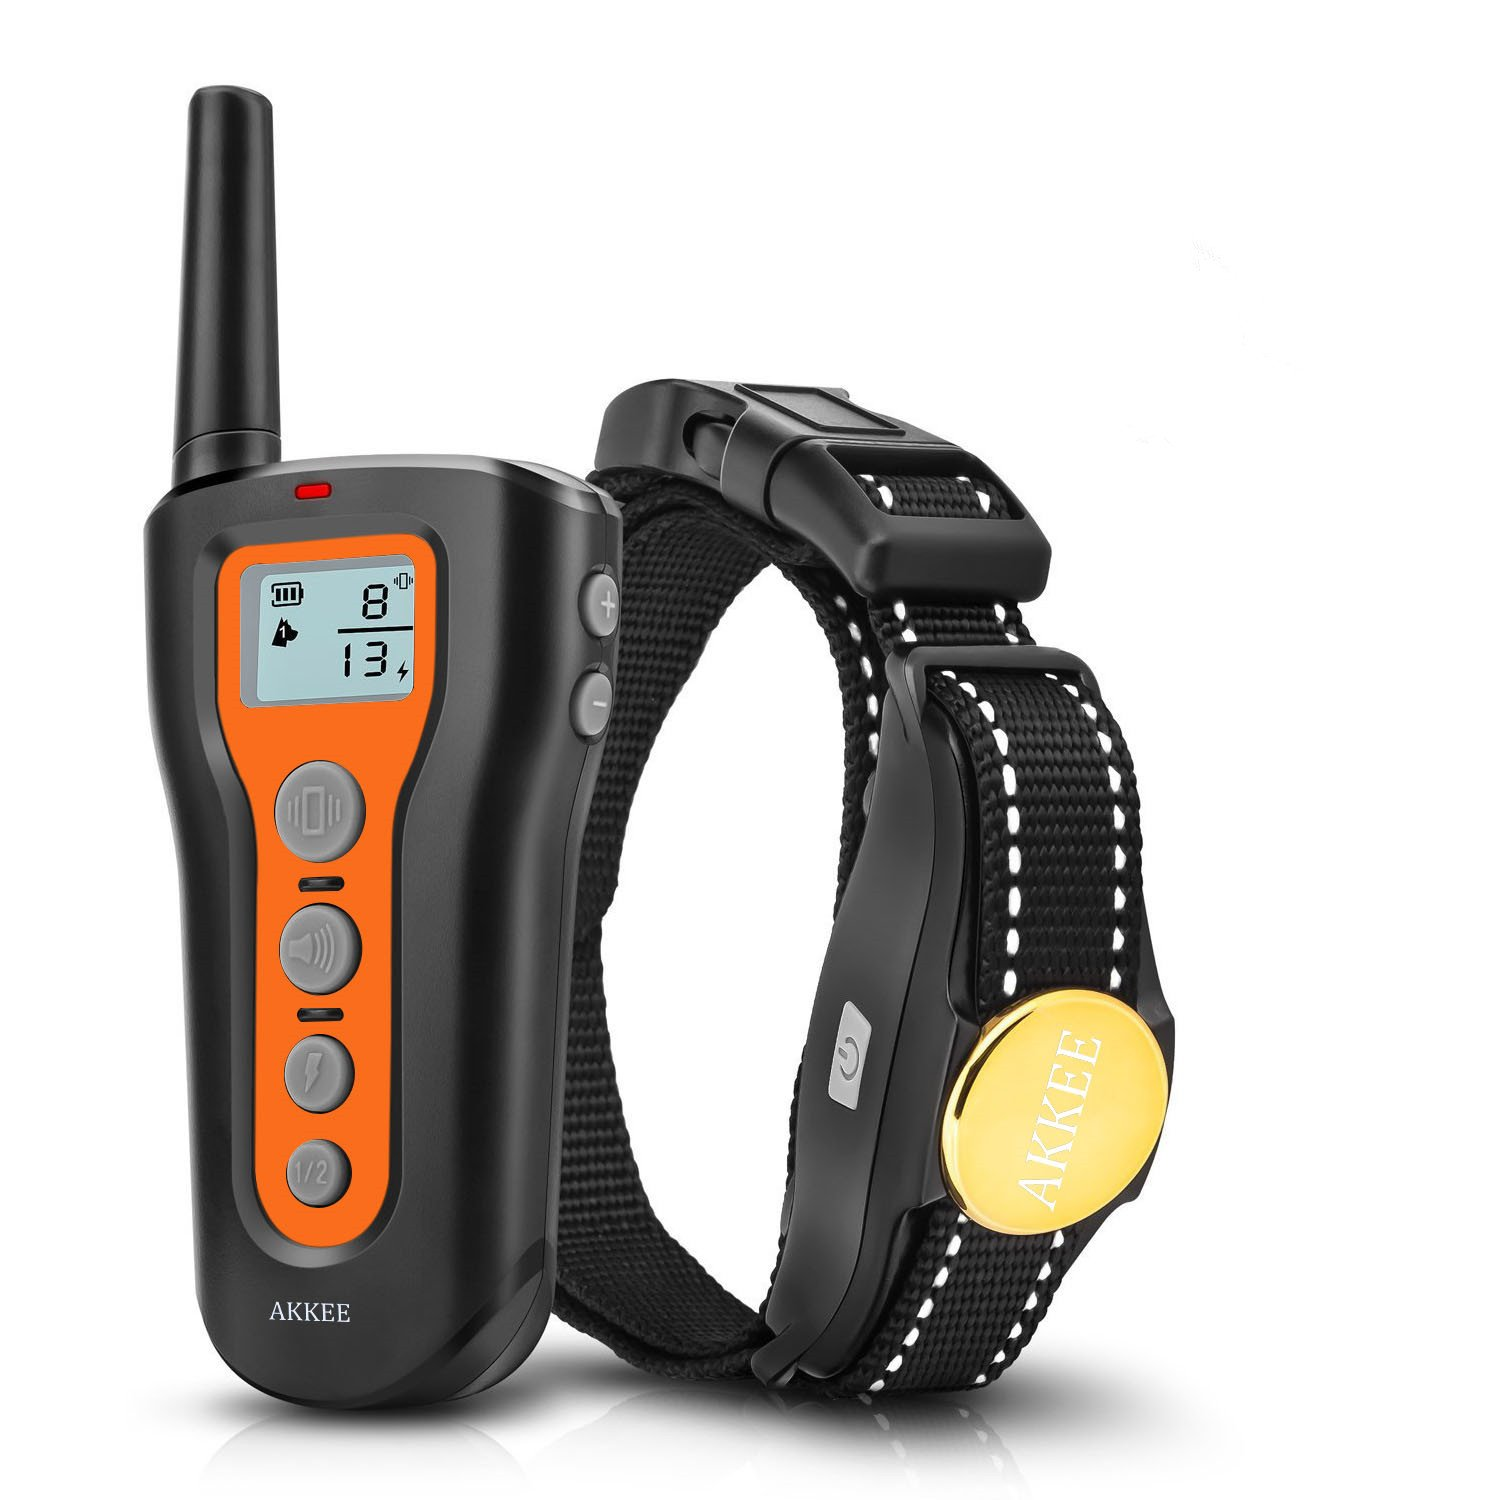 AKKEE Dog Training Collar Rechargeable & Waterproof Electric Dog Shock Collars with Remote 1000ft Range, With Beep Vibration Shock Training Mode, Pet Trainer E-Collars for Small Medium and Large Dogs